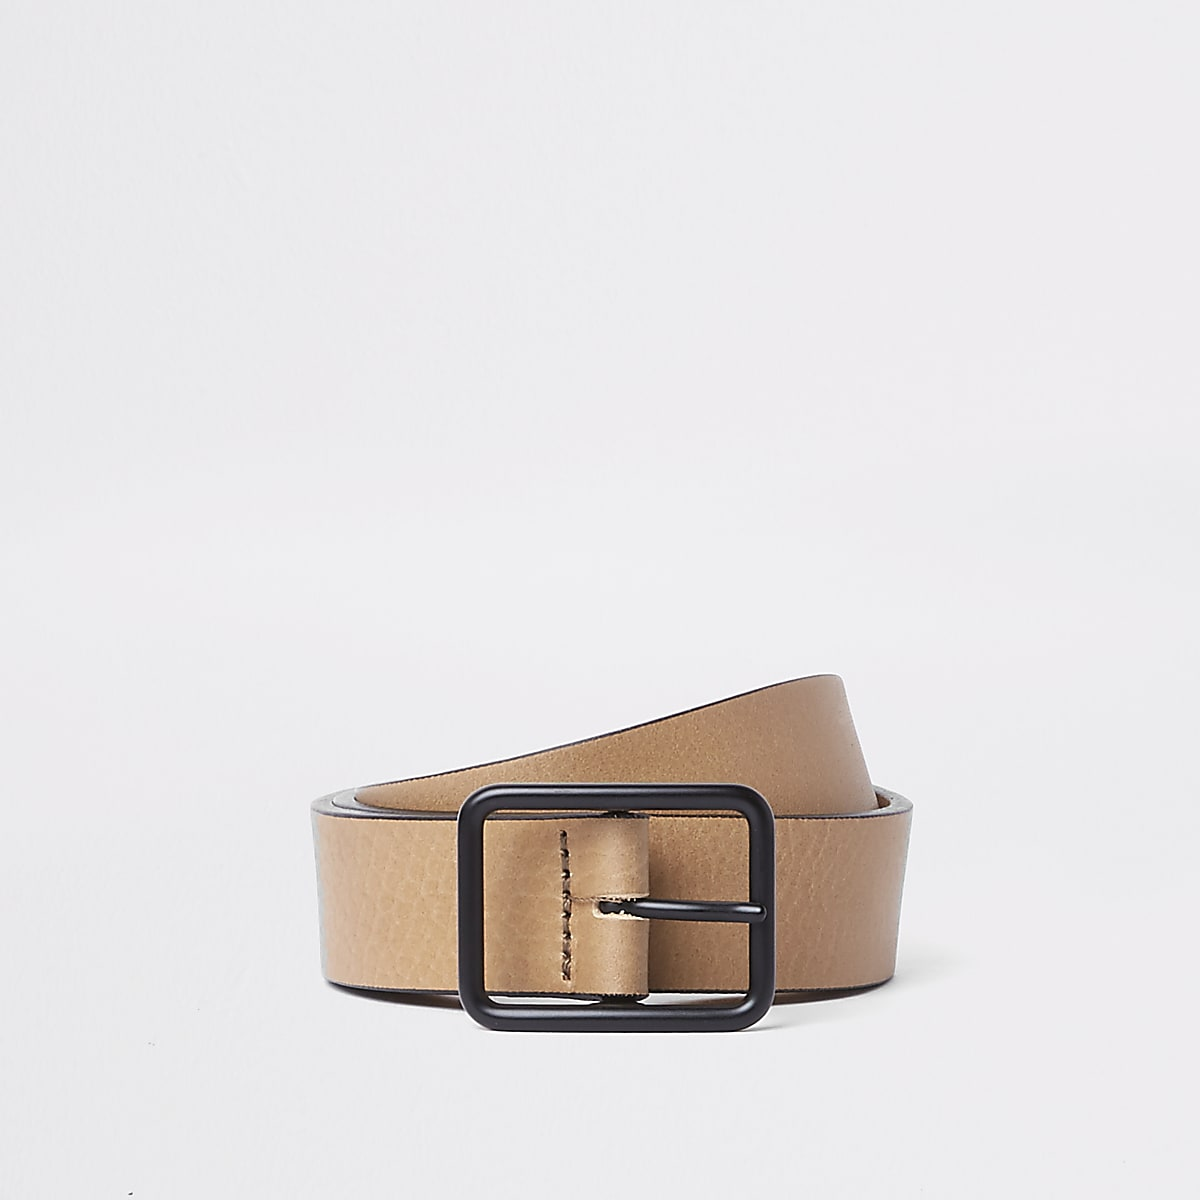 Light brown tan leather belt